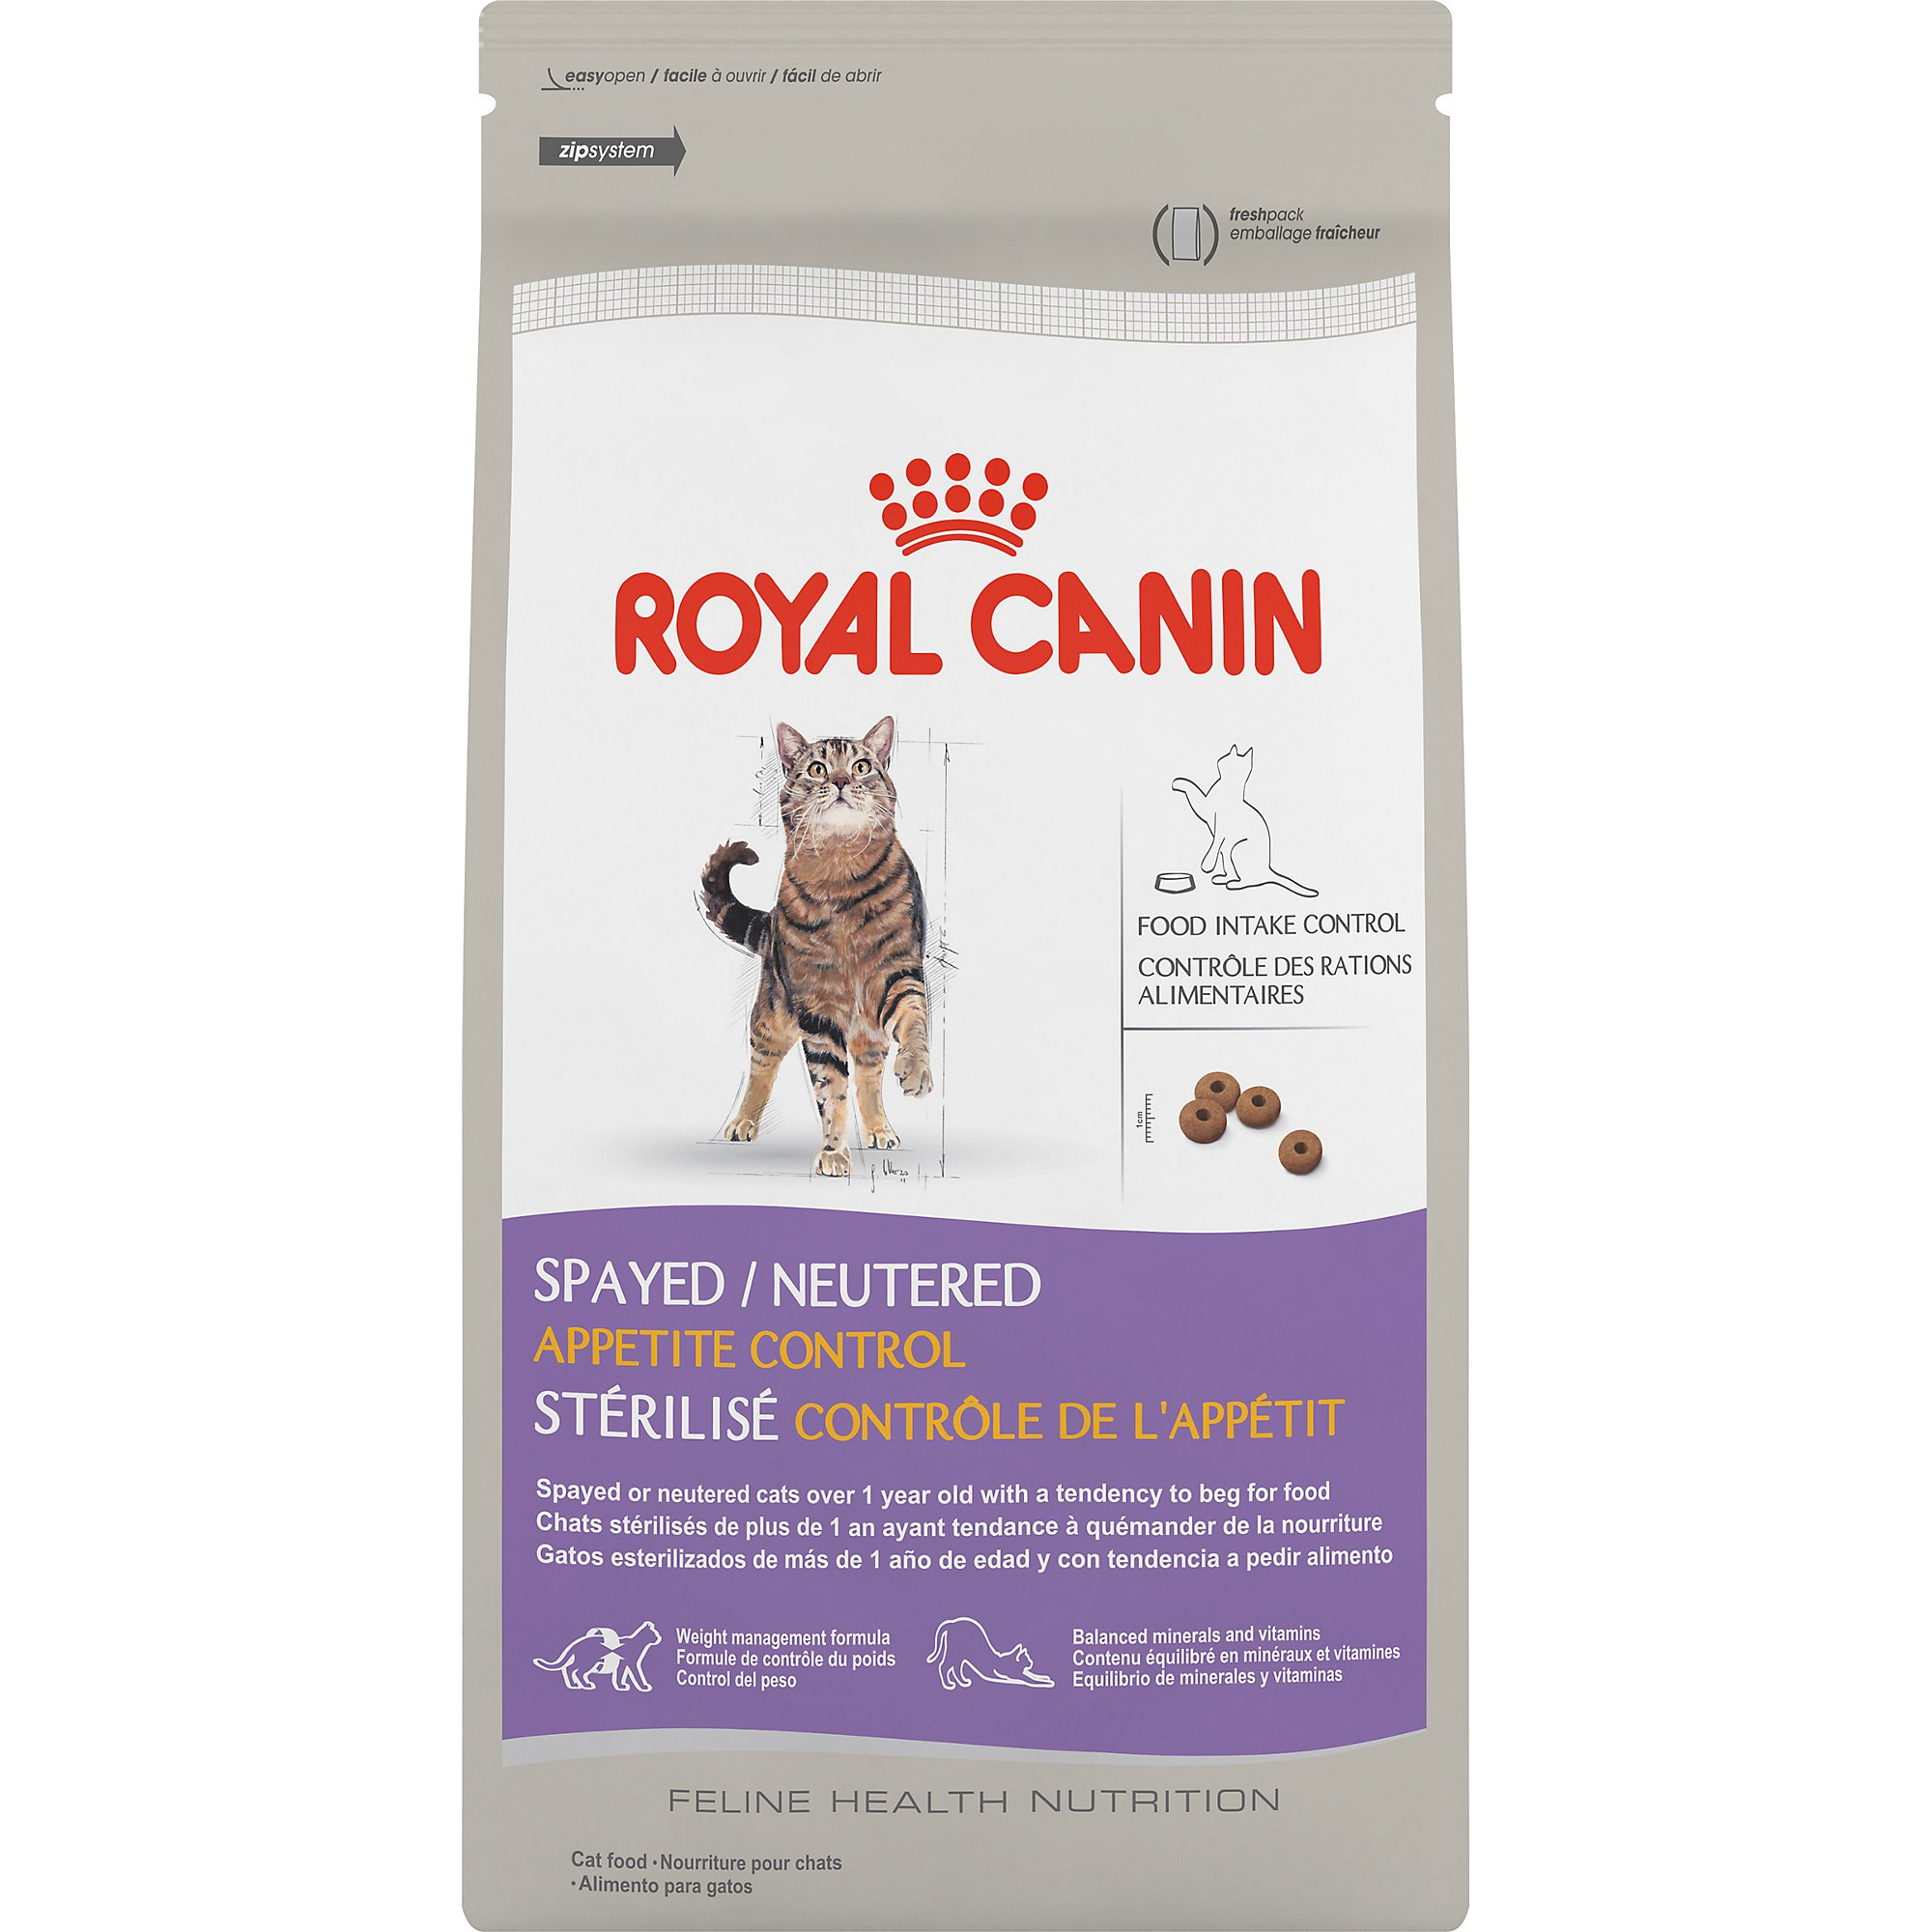 ROYAL CANIN FELINE HEALTH NUTRITION Spayed/Neutered Appetite Control dry cat food